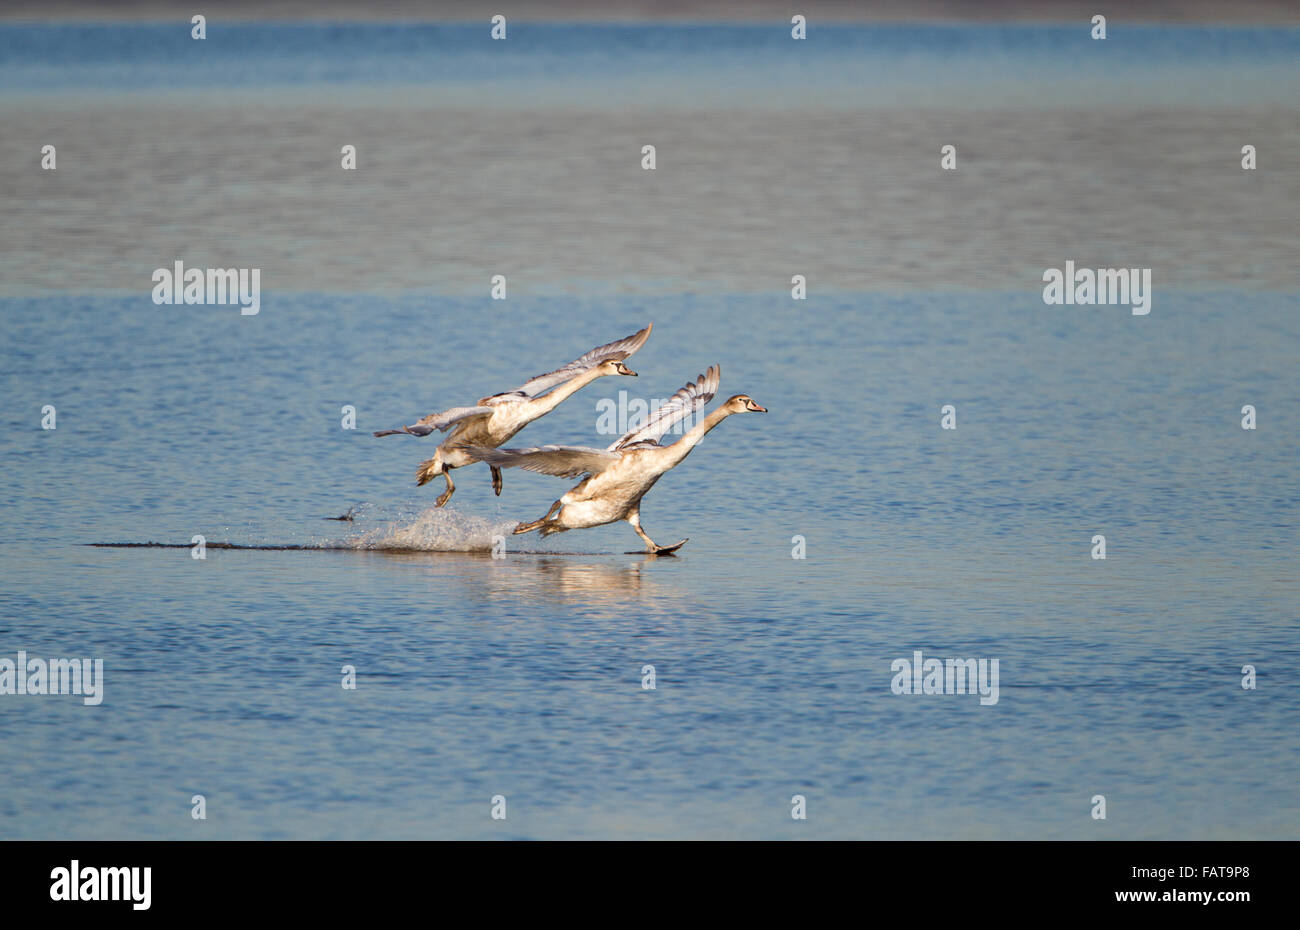 Mute Swan, Cygnus olor, two juveniles running across water, Stock Photo